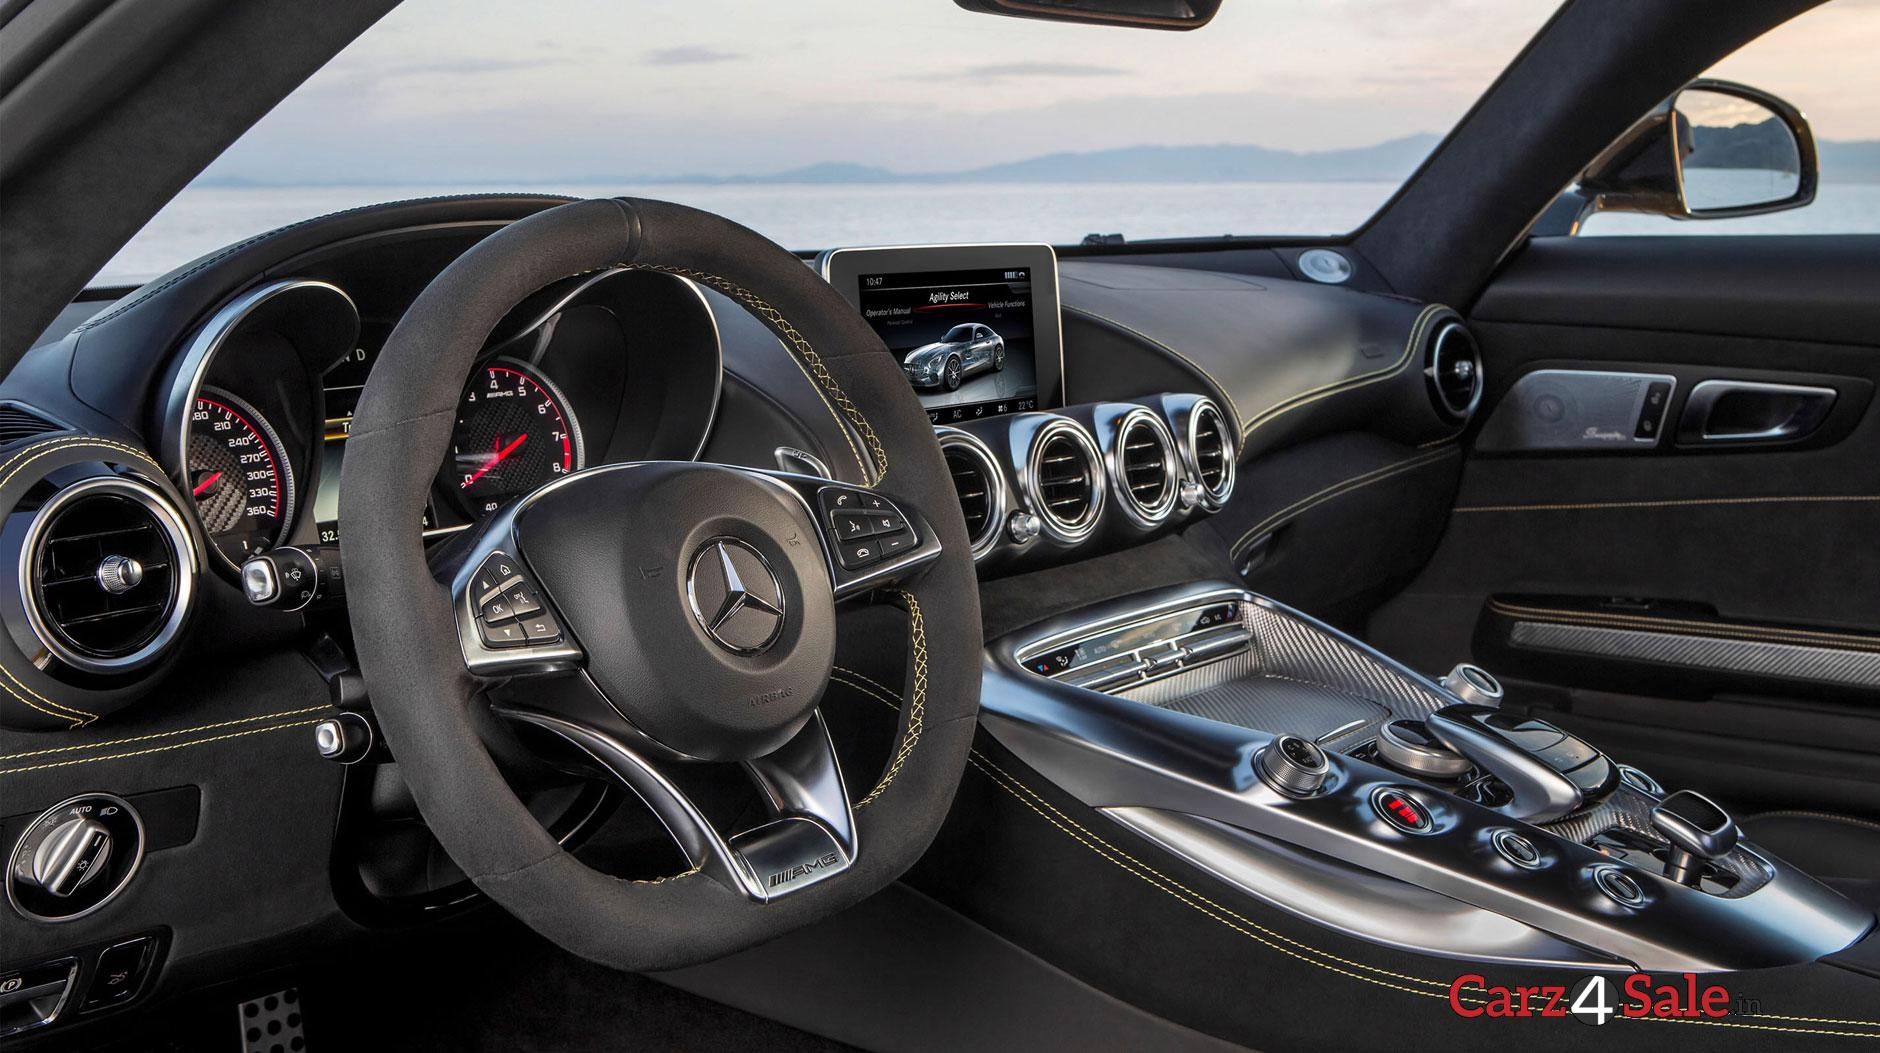 Mercedes Benz Amg Gt S 2016 Interiror